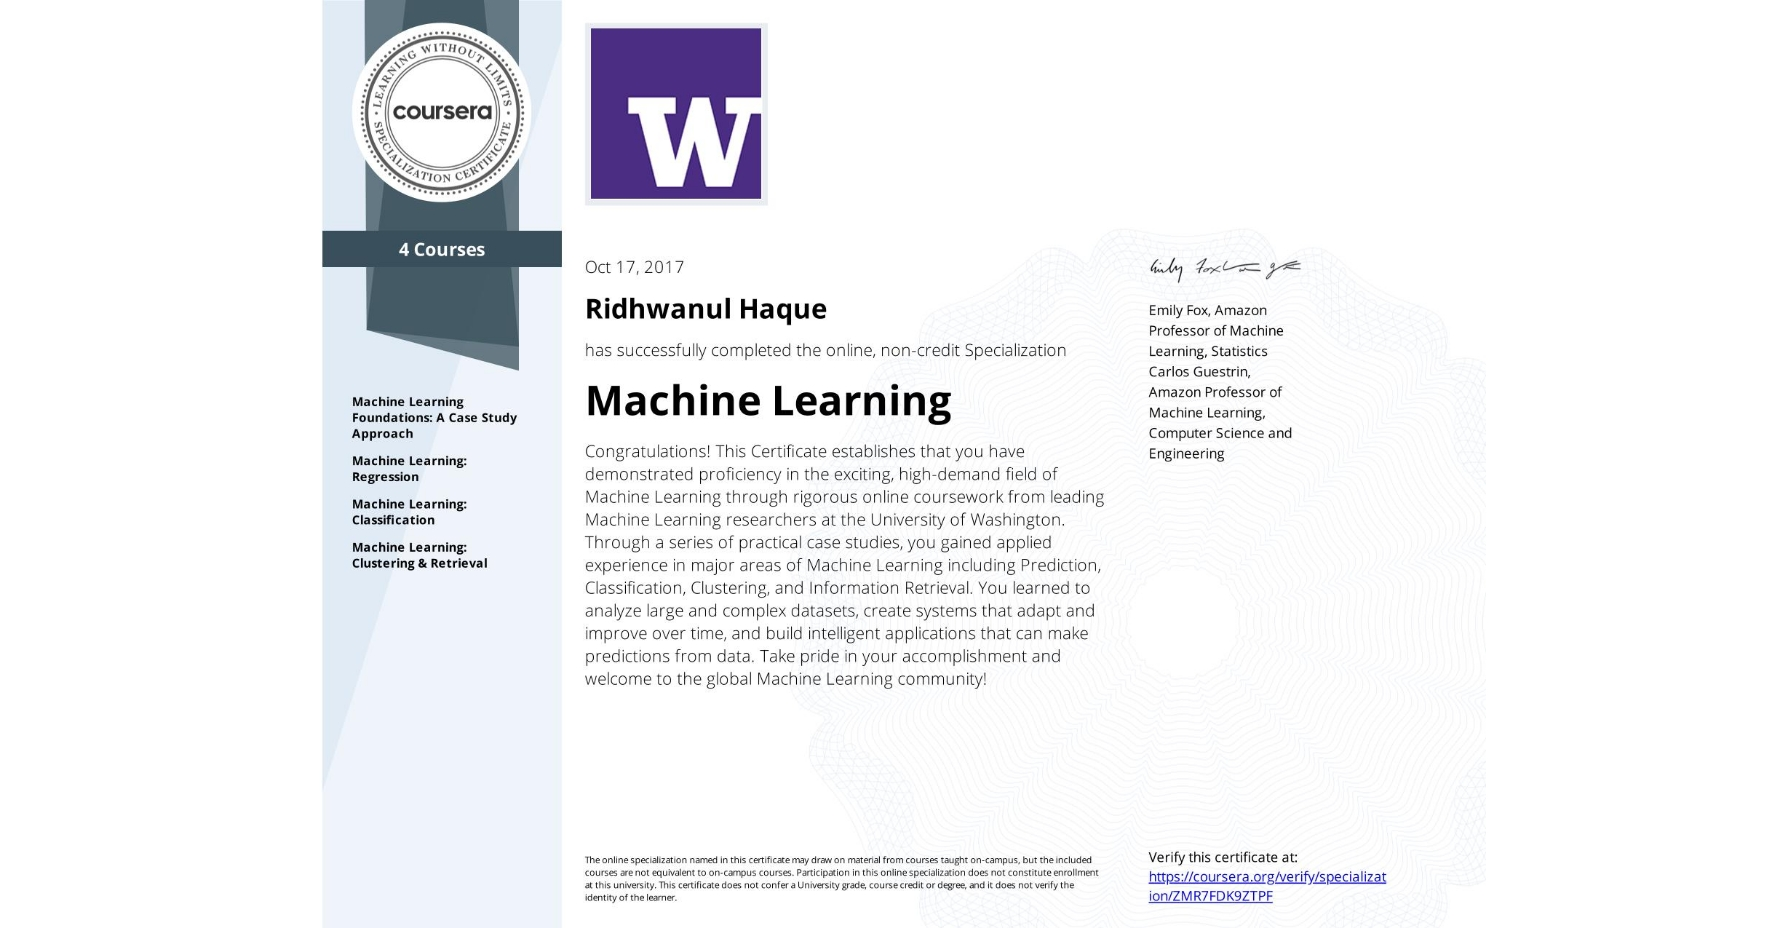 View certificate for Ridhwanul Haque, Machine Learning, offered through Coursera. Congratulations! This Certificate establishes that you have demonstrated proficiency in the exciting, high-demand field of Machine Learning through rigorous online coursework from leading Machine Learning researchers at the University of Washington. Through a series of practical case studies, you gained applied experience in major areas of Machine Learning including Prediction, Classification, Clustering, and Information Retrieval. You learned to analyze large and complex datasets, create systems that adapt and improve over time, and build intelligent applications that can make predictions from data. Take pride in your accomplishment and welcome to the global Machine Learning community!